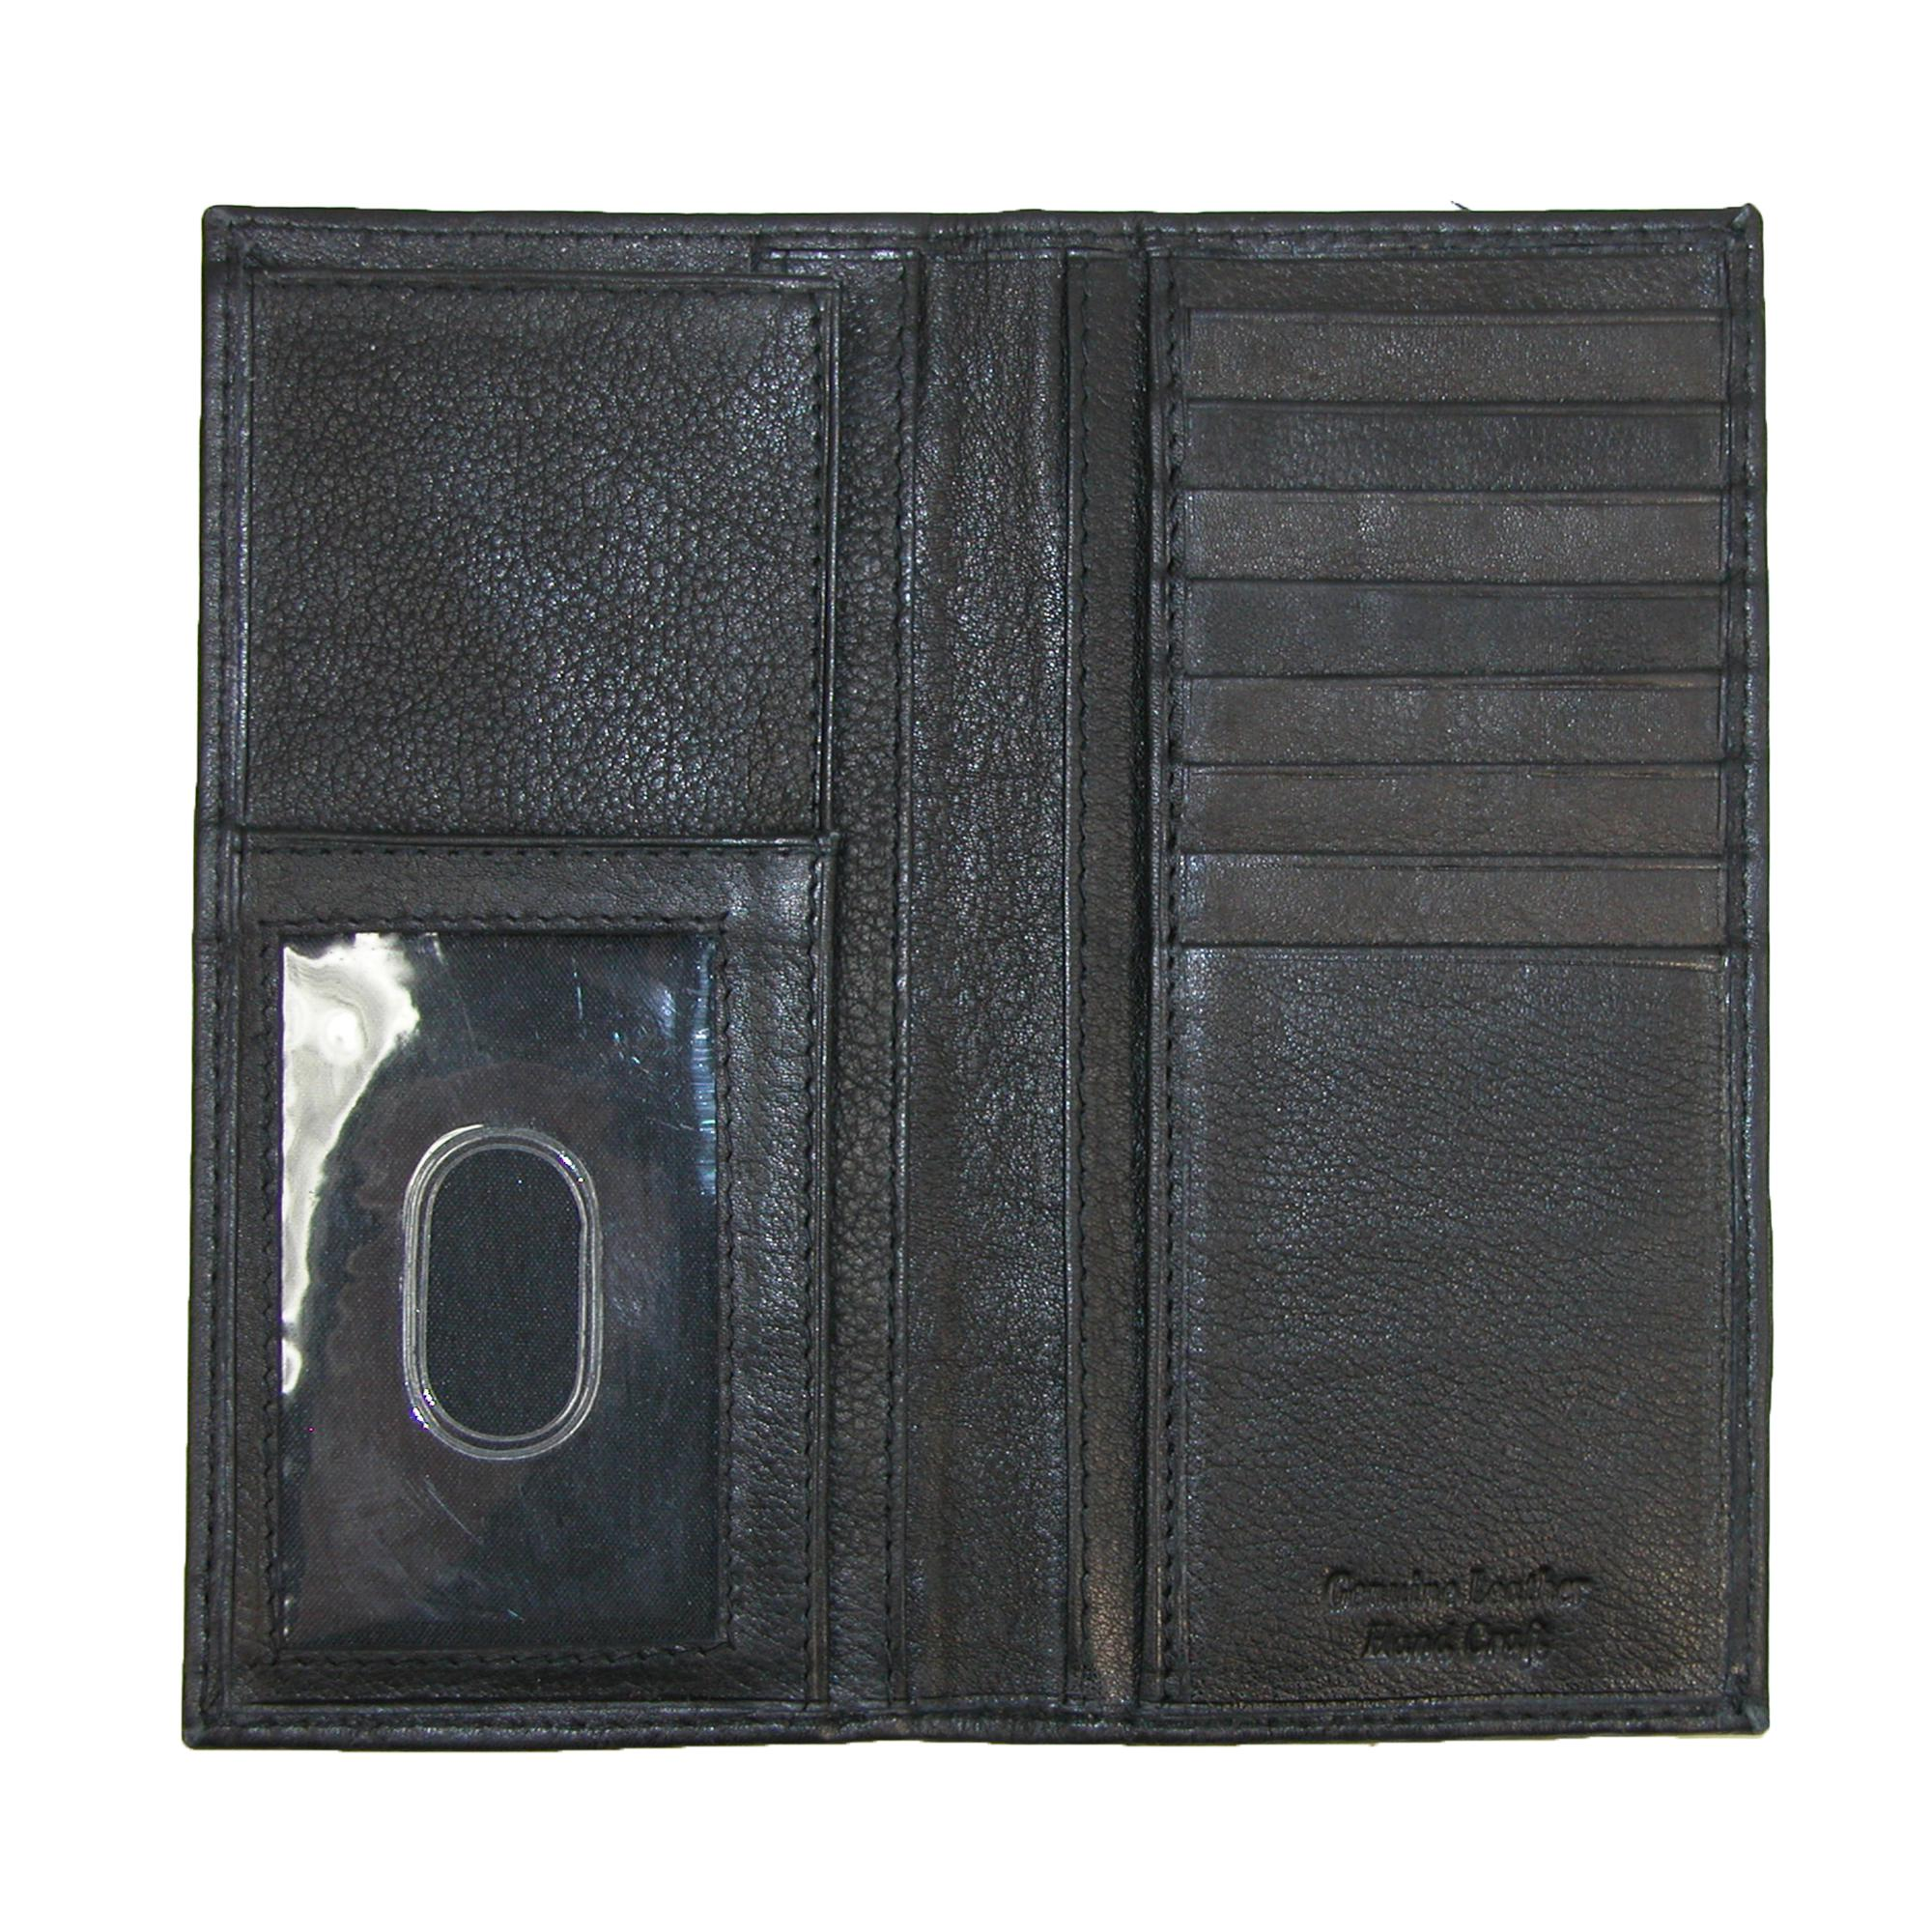 New Paul /& Taylor Leather Card Holder and Checkbook Cover Wallet